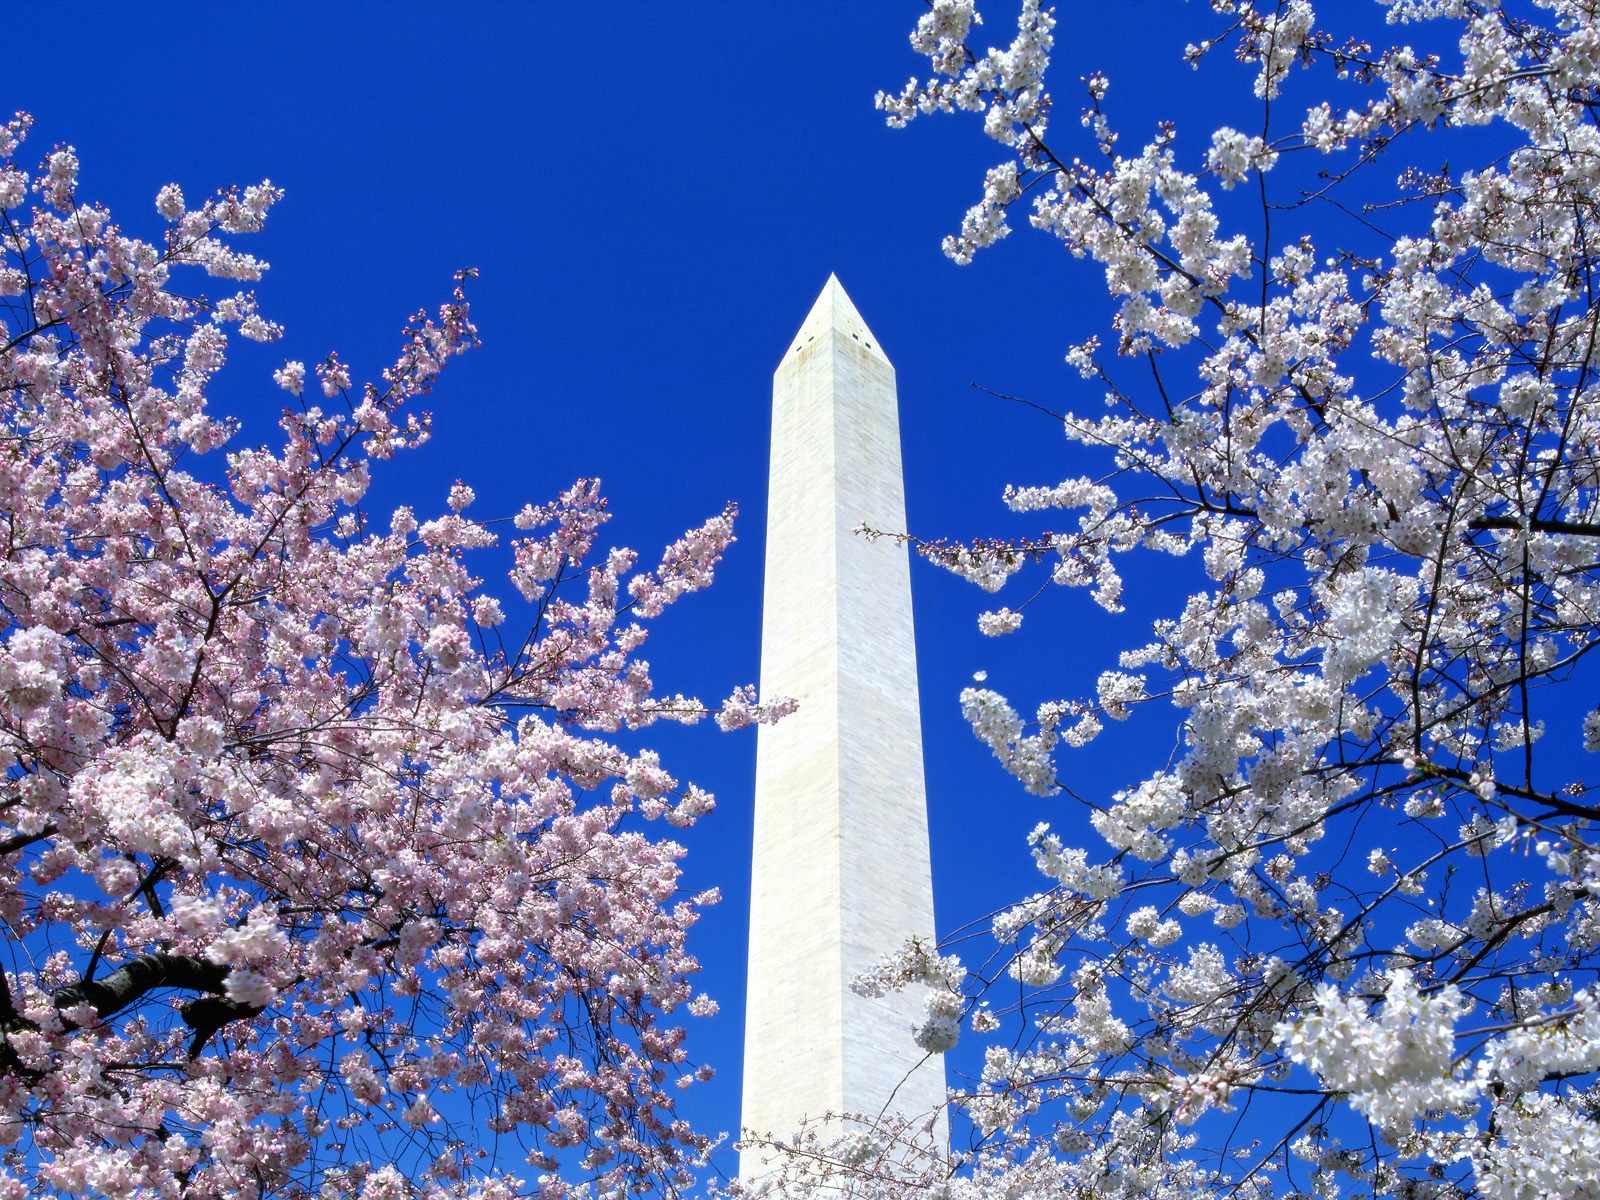 Washington Monument through the cherry blossoms, Washington D.C. 1600x1200 wallpaper